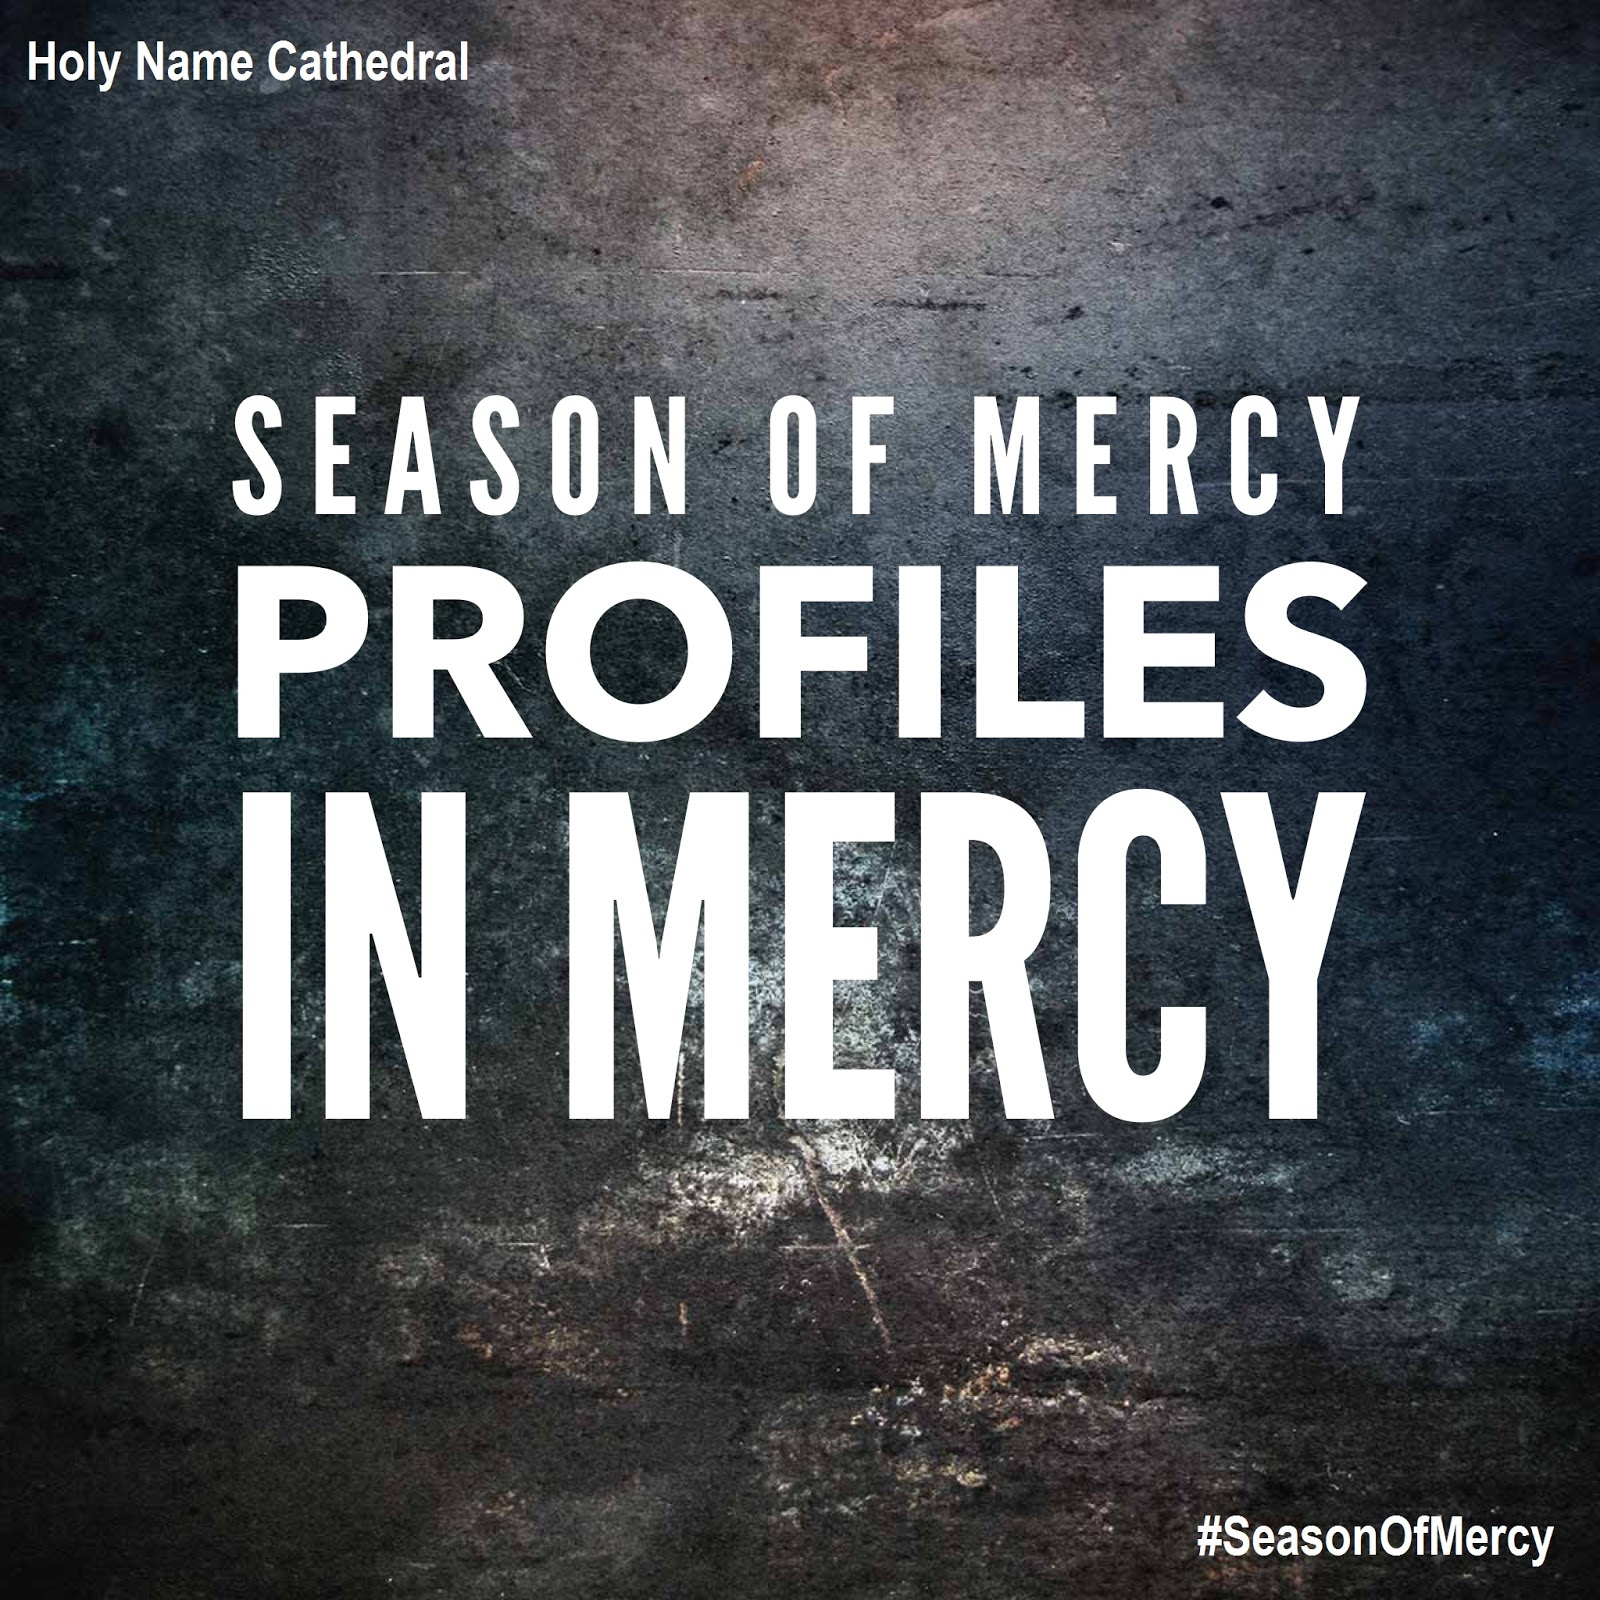 Holy Name Cathedral: Mercy Profile - Bear Wrongs Patiently